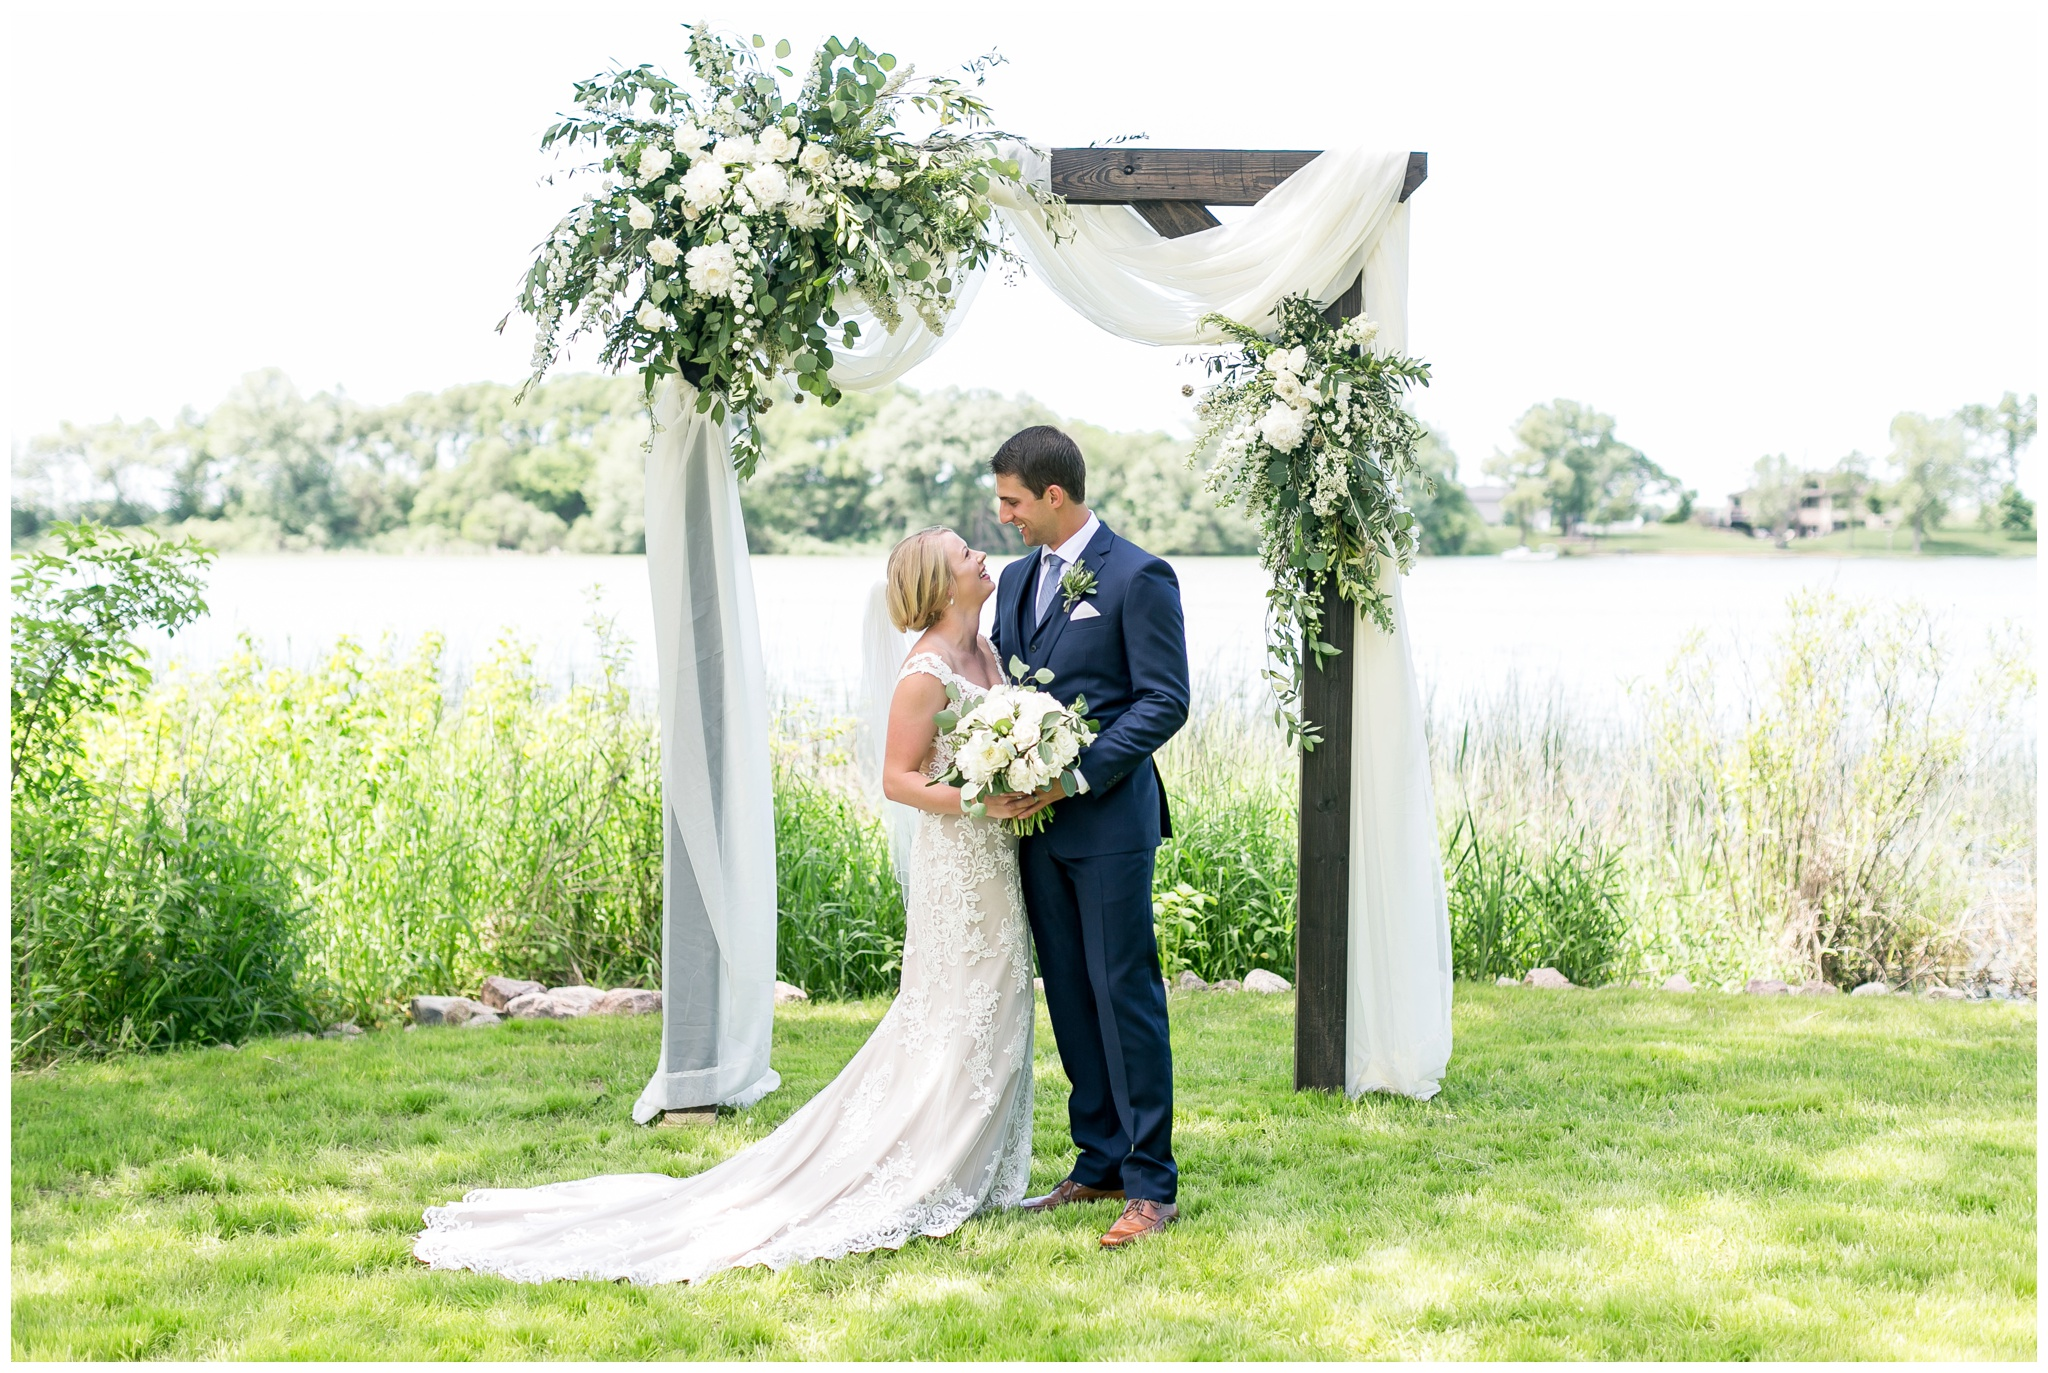 private_estate_wedding_stoughton_wisconsin_wedding_caynay_photo_3845.jpg